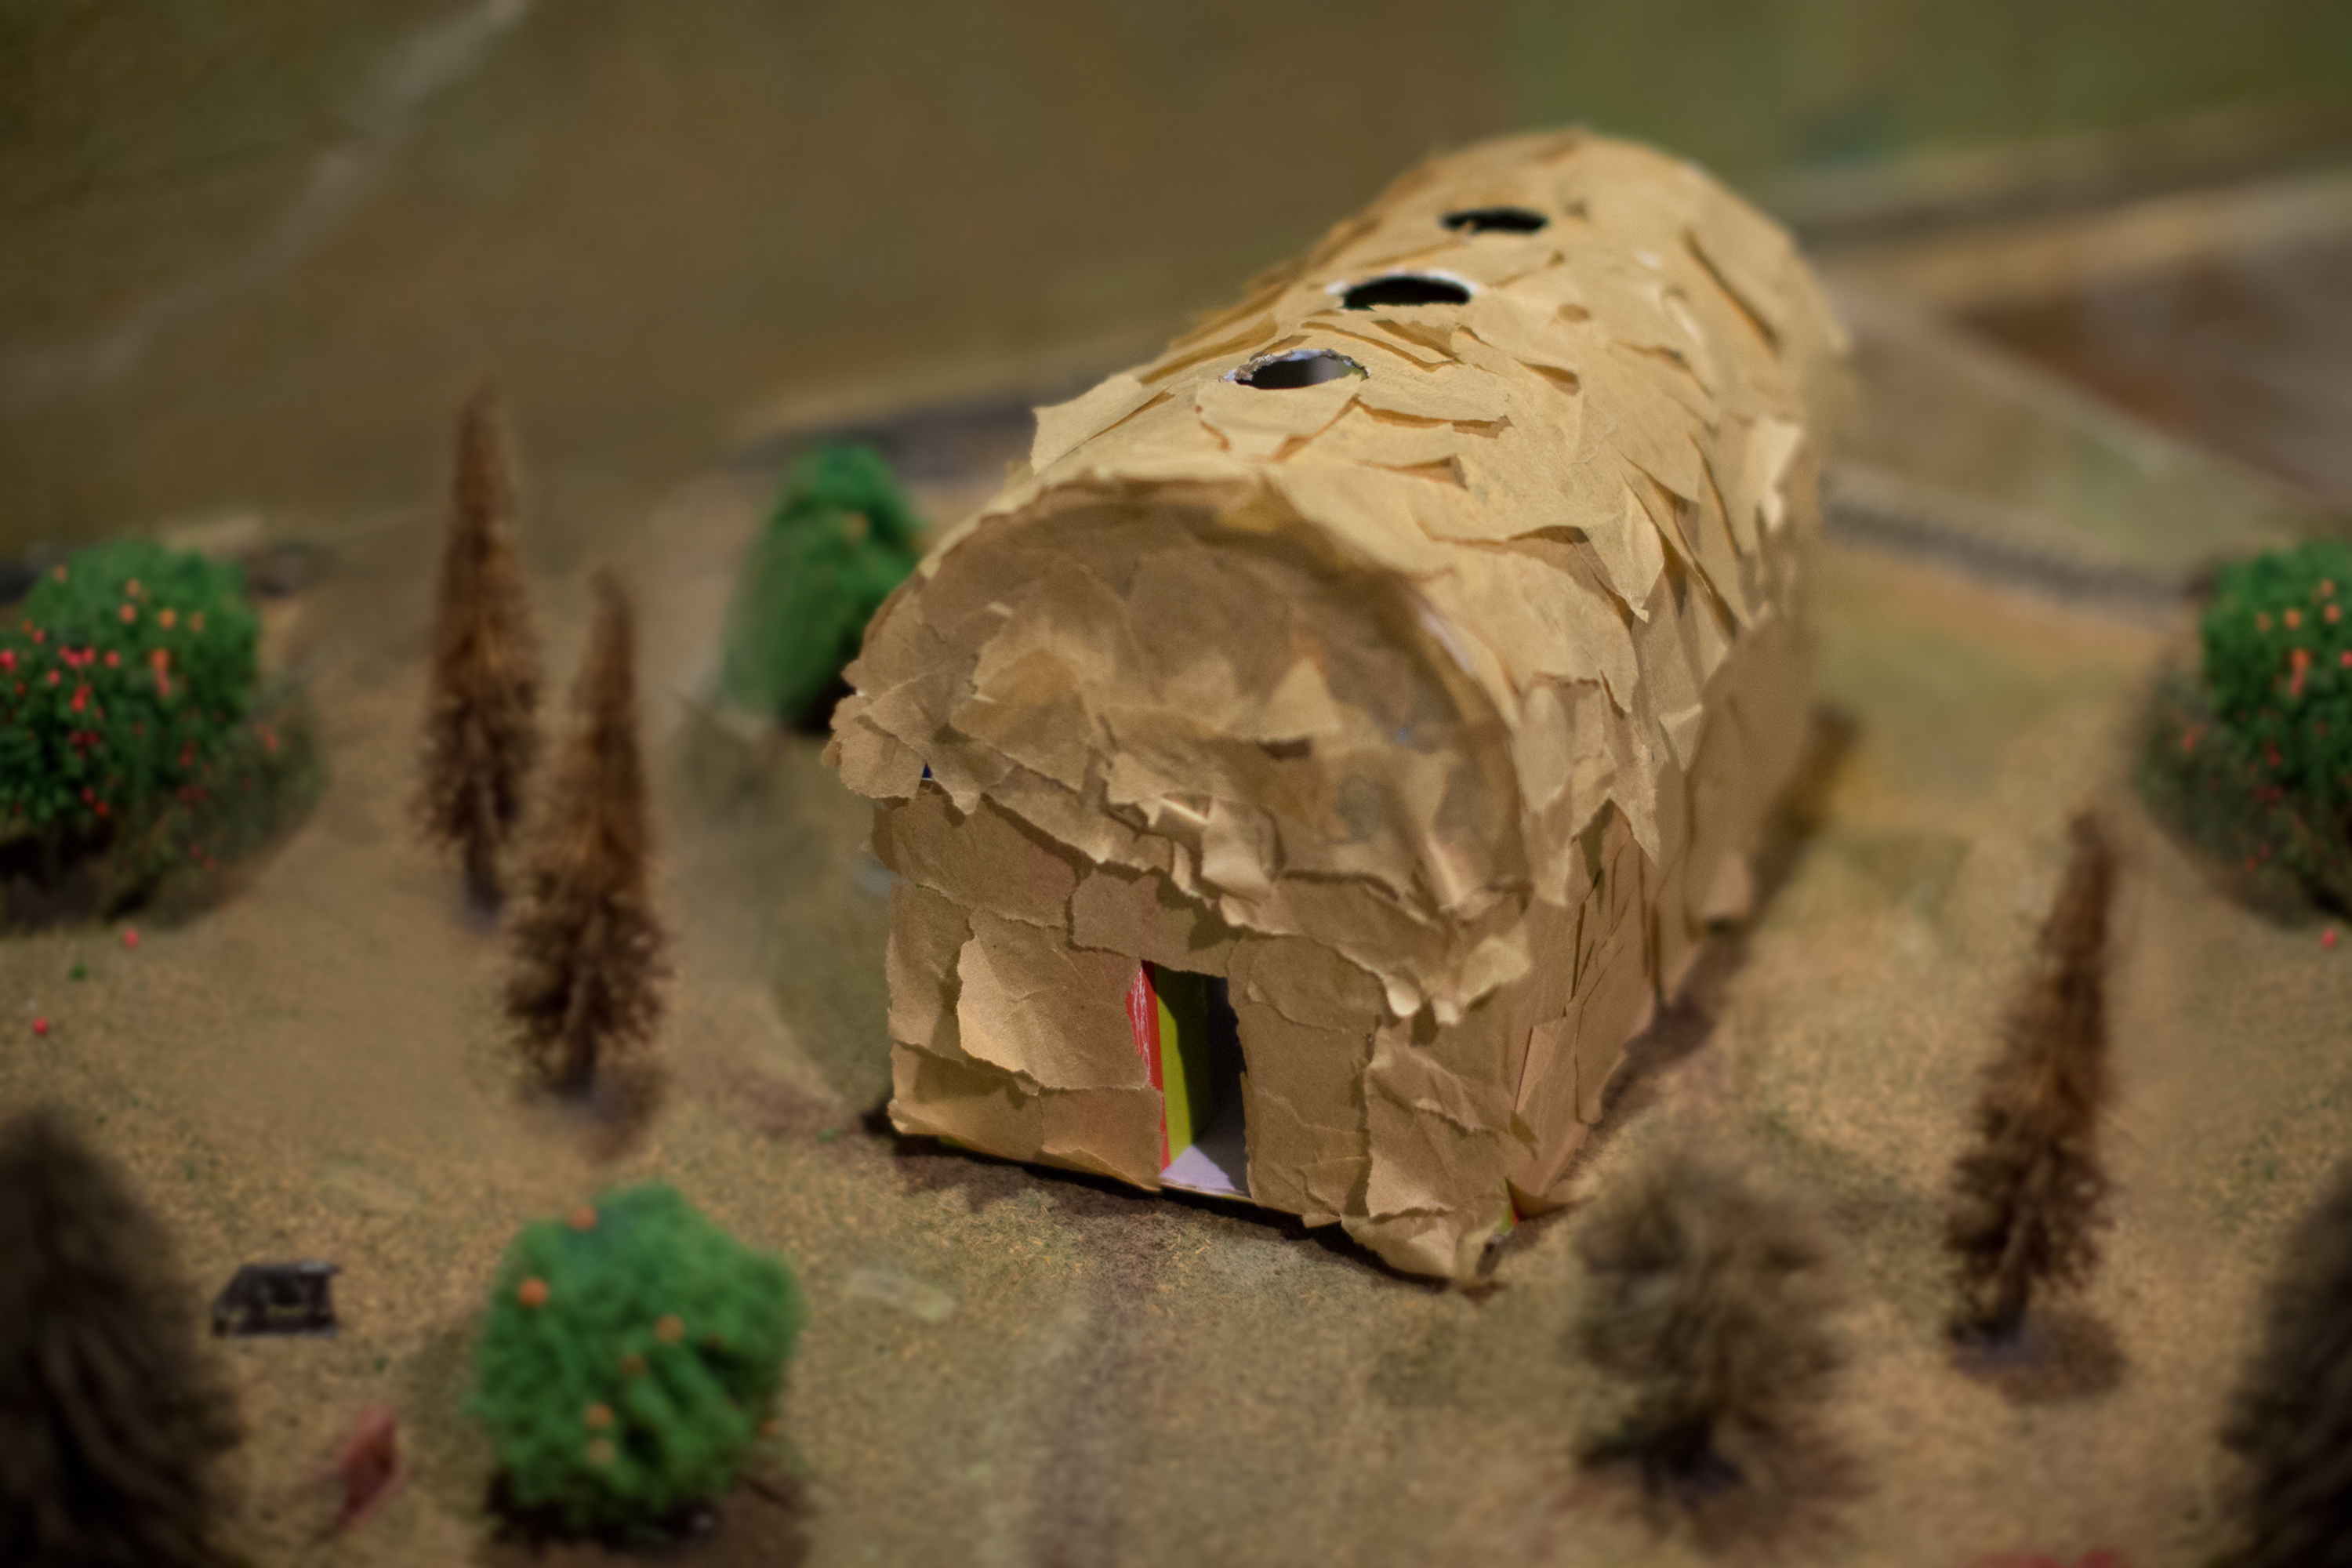 How To Make A Longhouse For A School Project